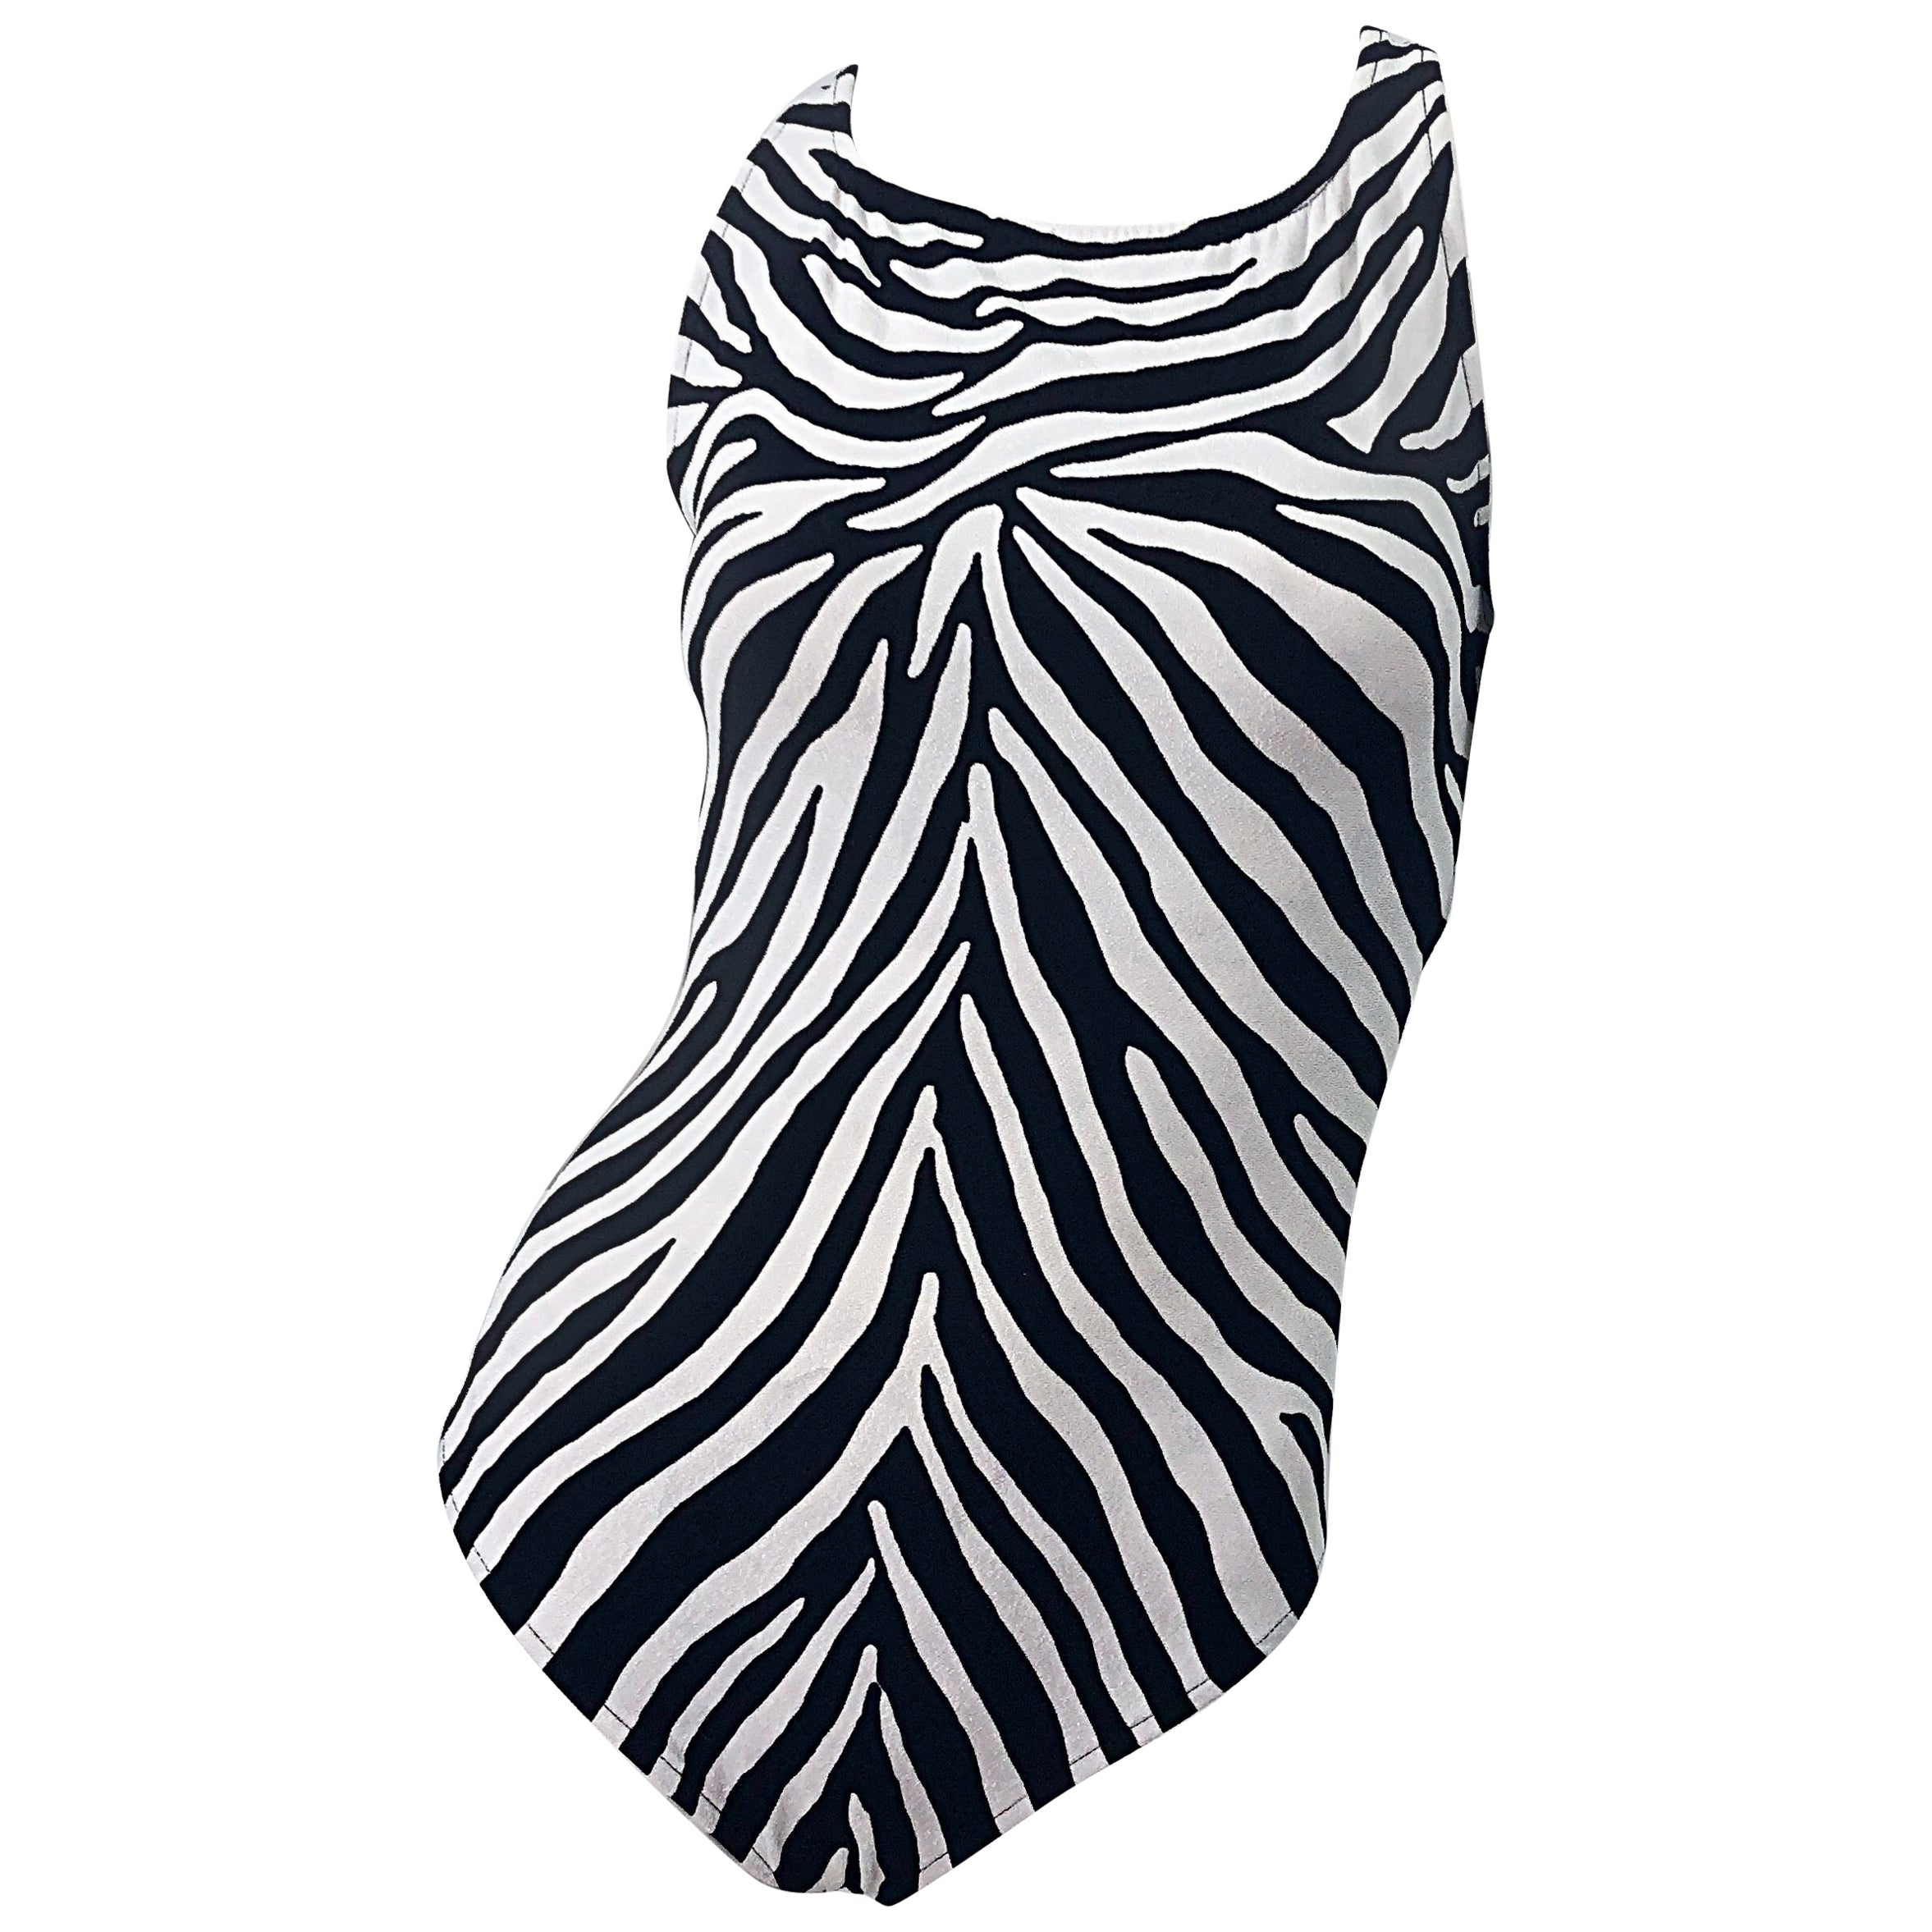 1980s Bill Blass Size 14 Zebra Print Black White One Piece Swimsuit / Bodysuit